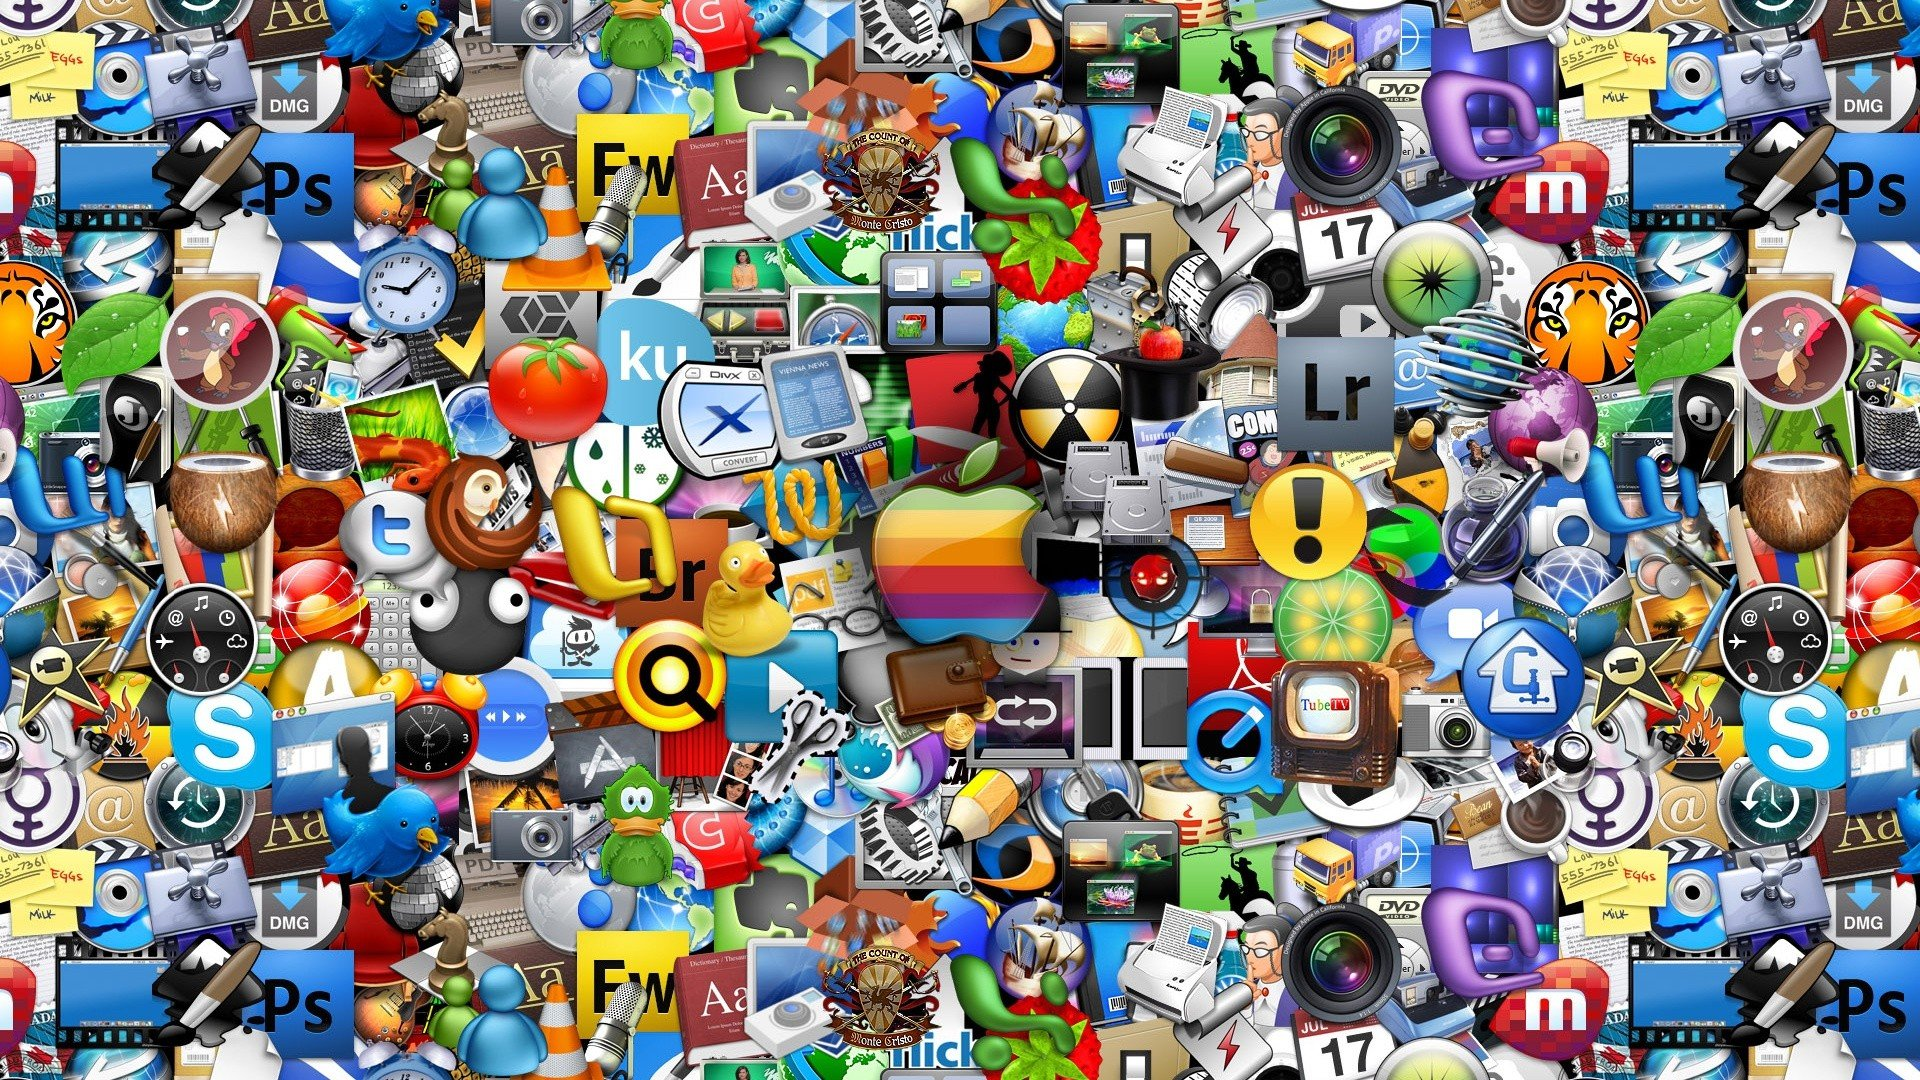 Collection Brands Icons Logo Wallpaper 1012 Wallpaper 1920x1080